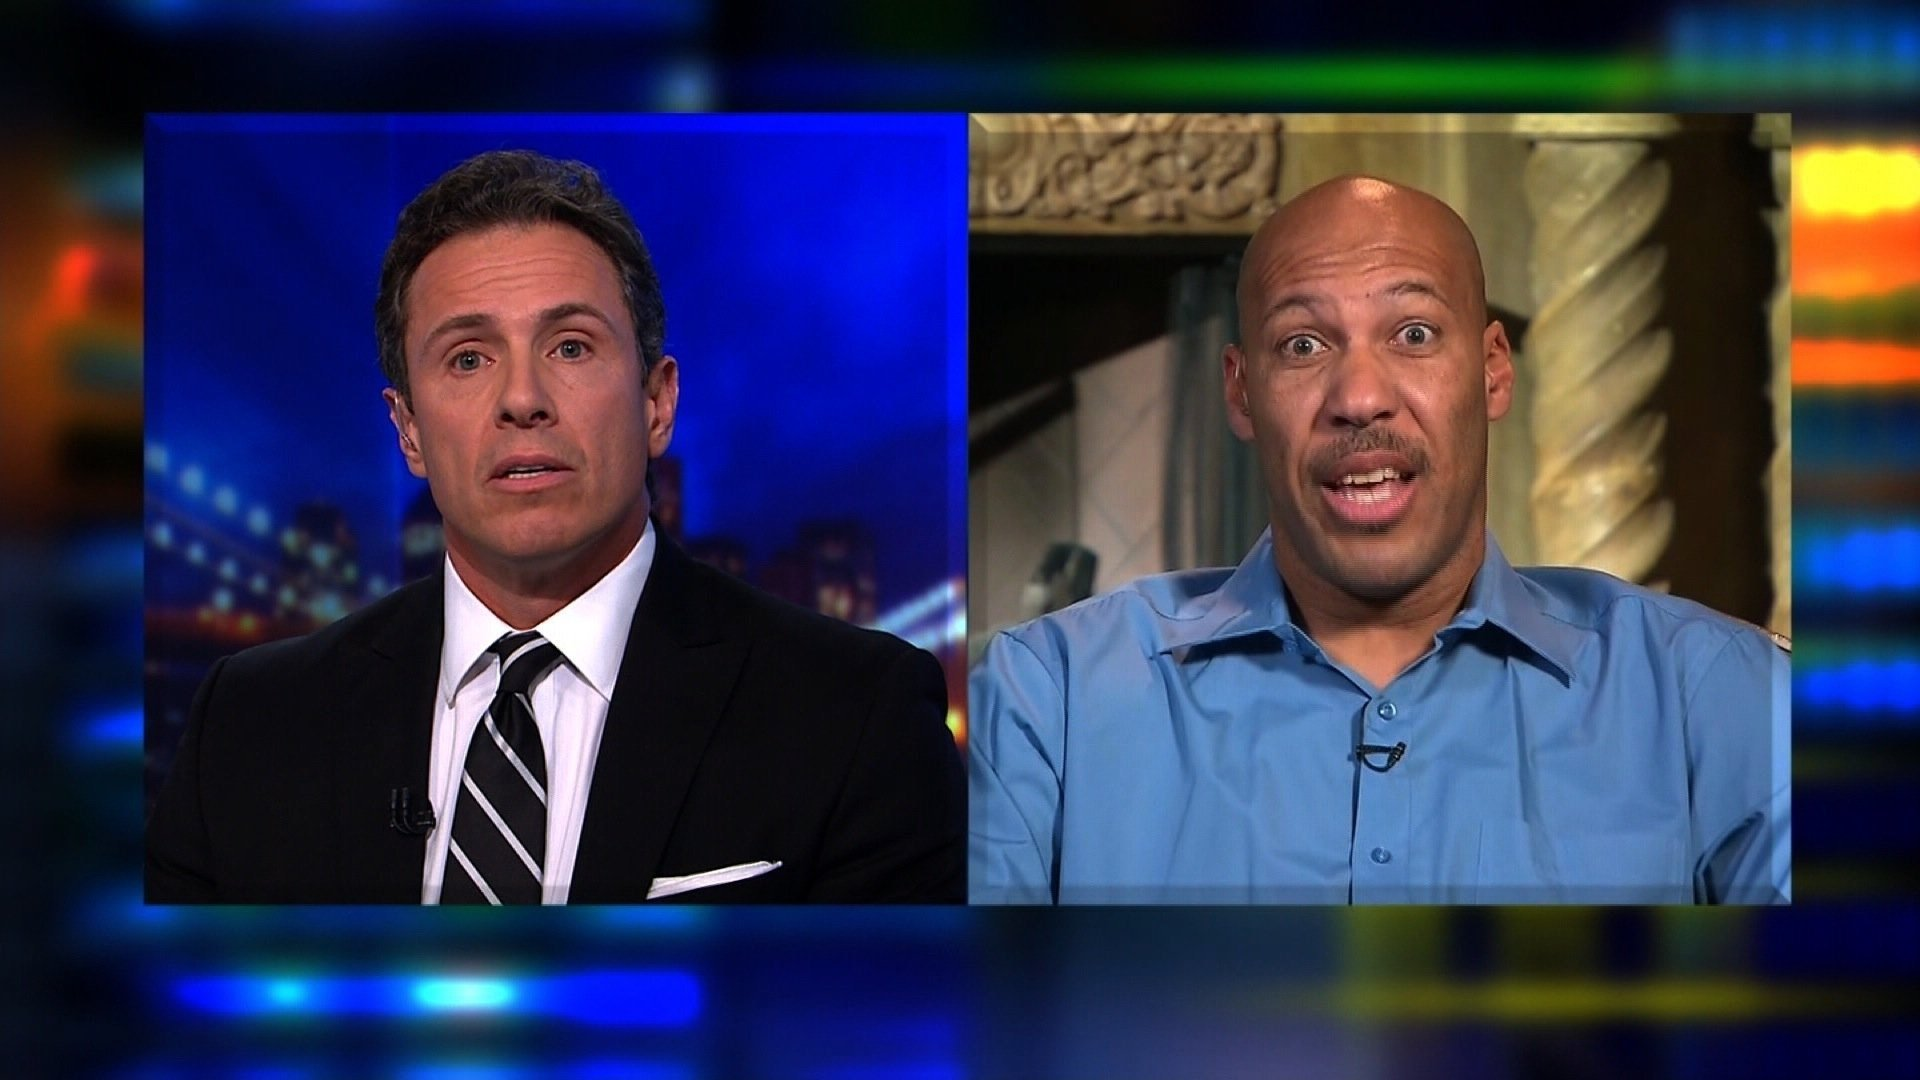 Things to Know: LaVar Ball talks about Trump's help on CNN